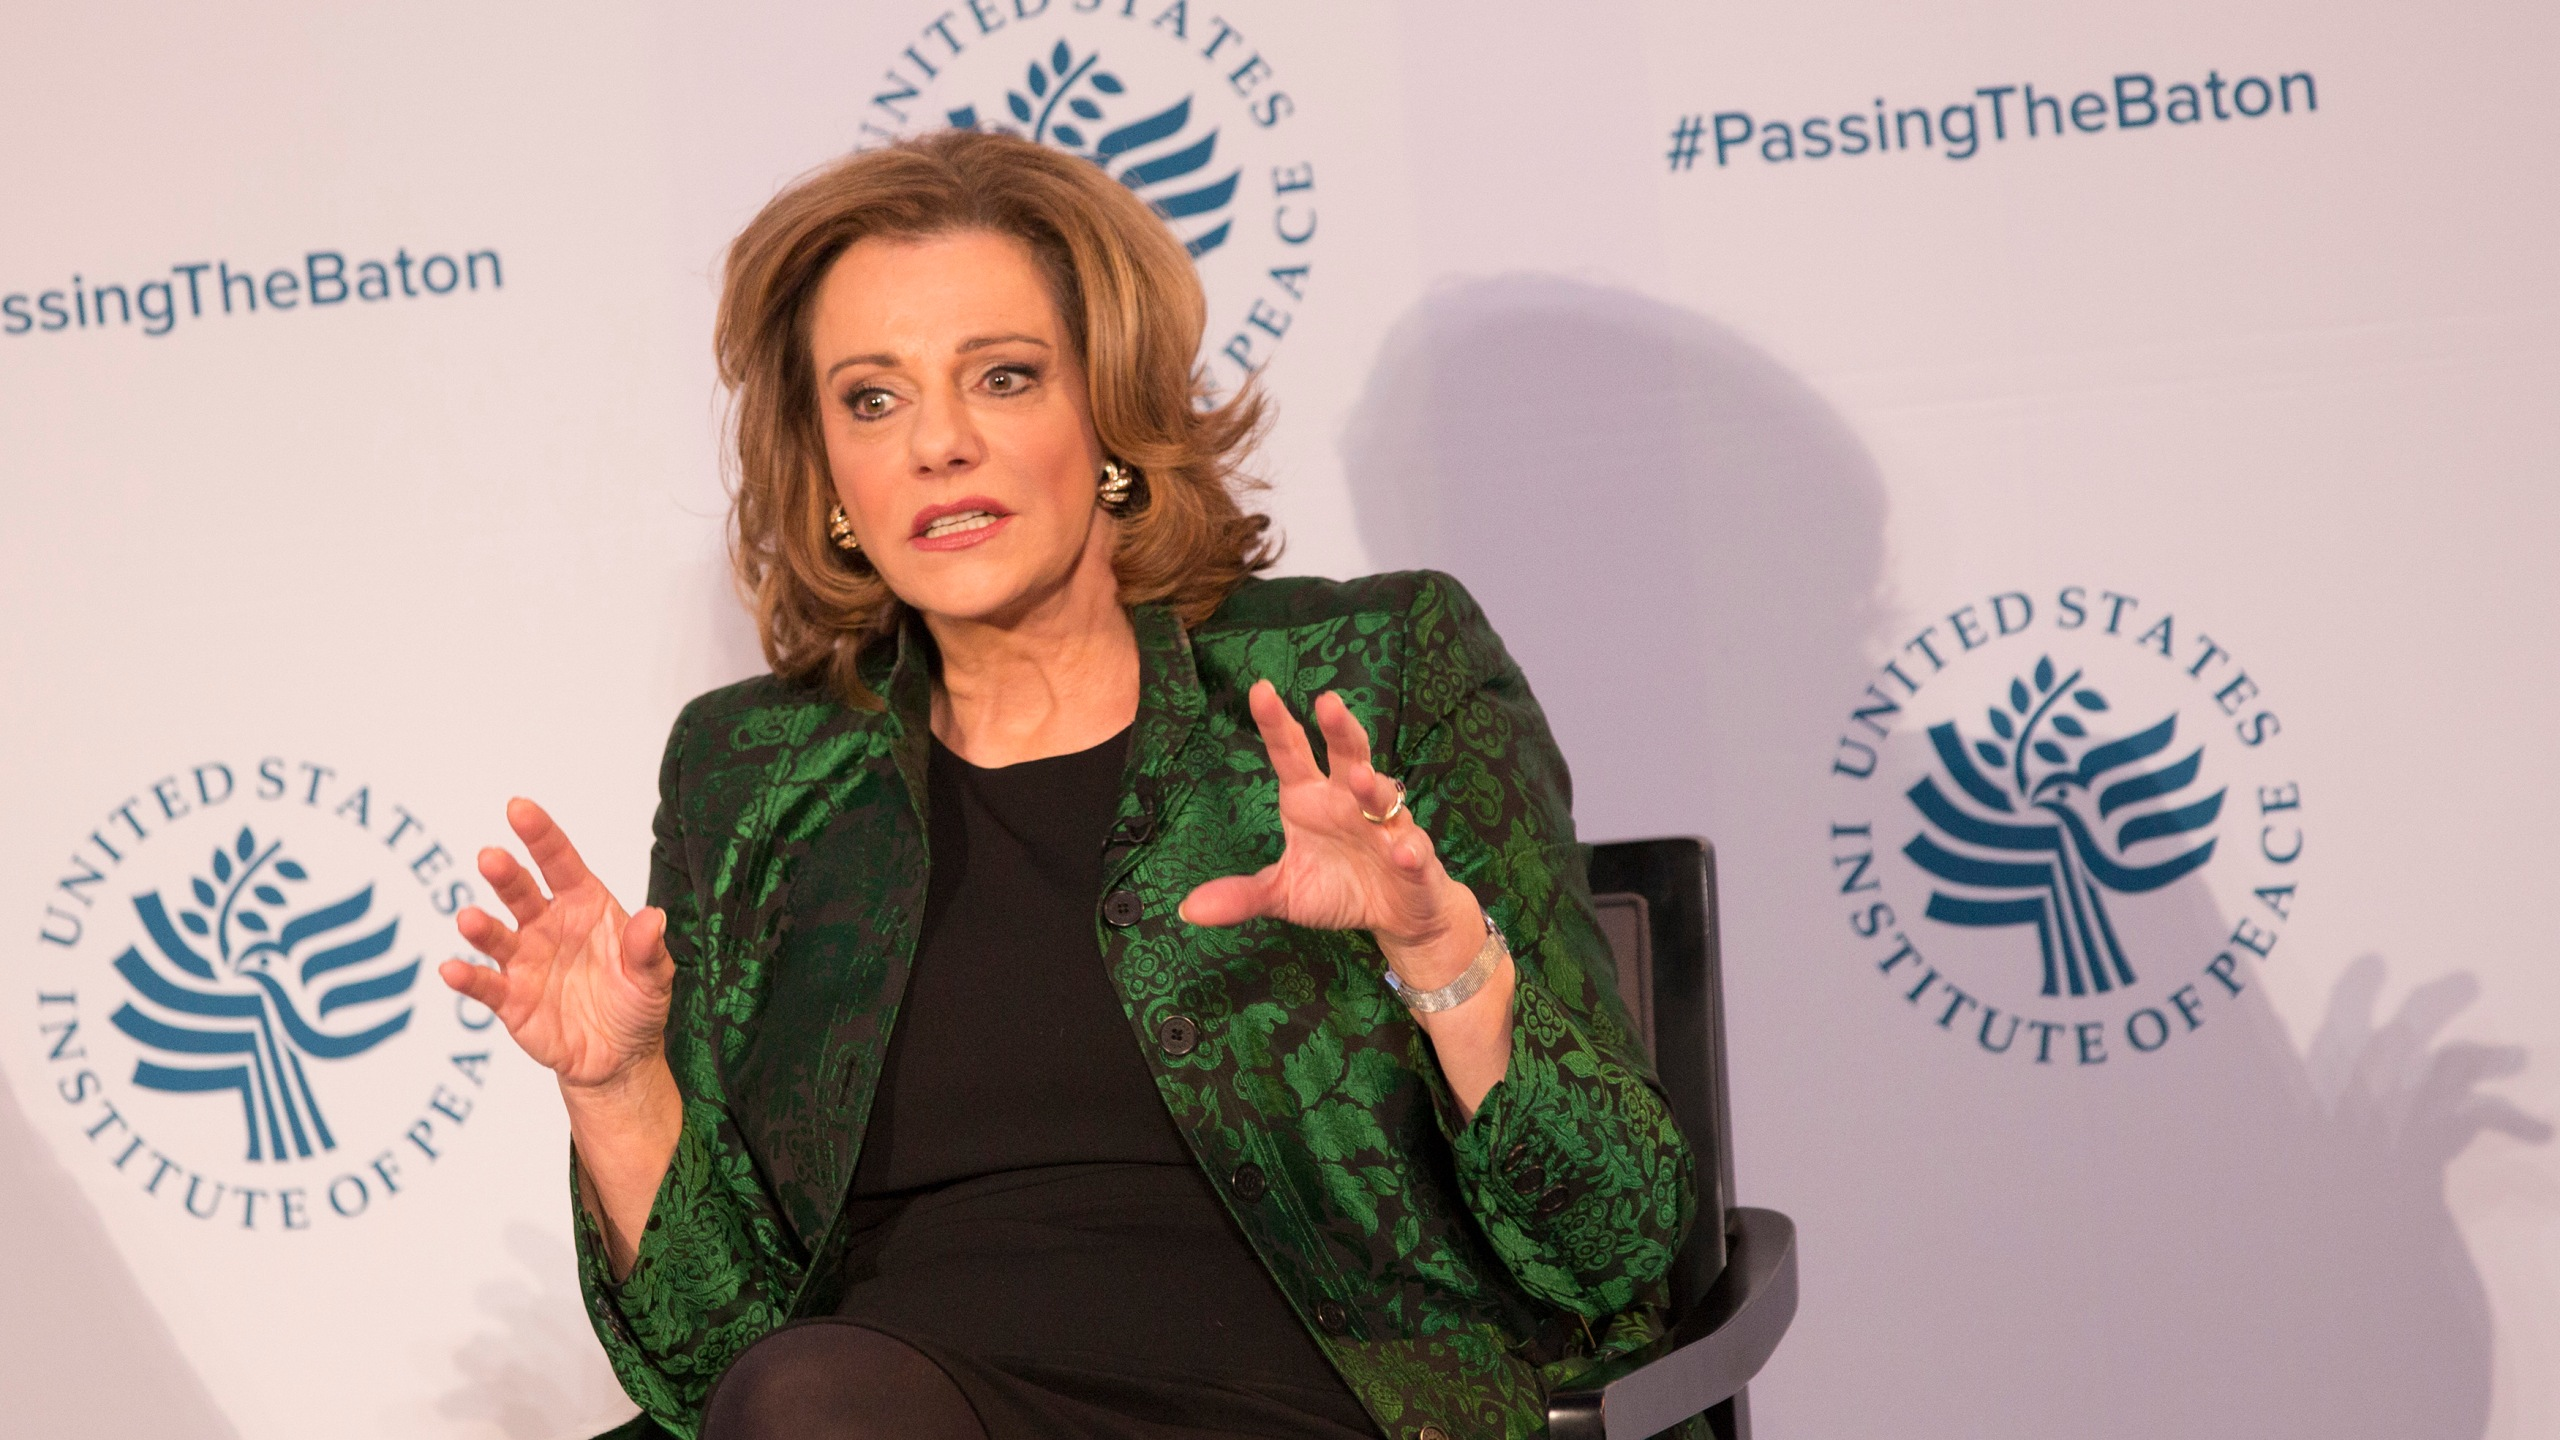 """Kathleen Troia """"K.T."""" McFarland, then Deputy National Security Advisor Designate, speaks during a conference on the transition of the U.S. presidency from Obama to Trump at the U.S. Institute of Peace in Washington D.C., Jan. 10, 2017. (Credit: CHRIS KLEPONIS/AFP/Getty Images)"""